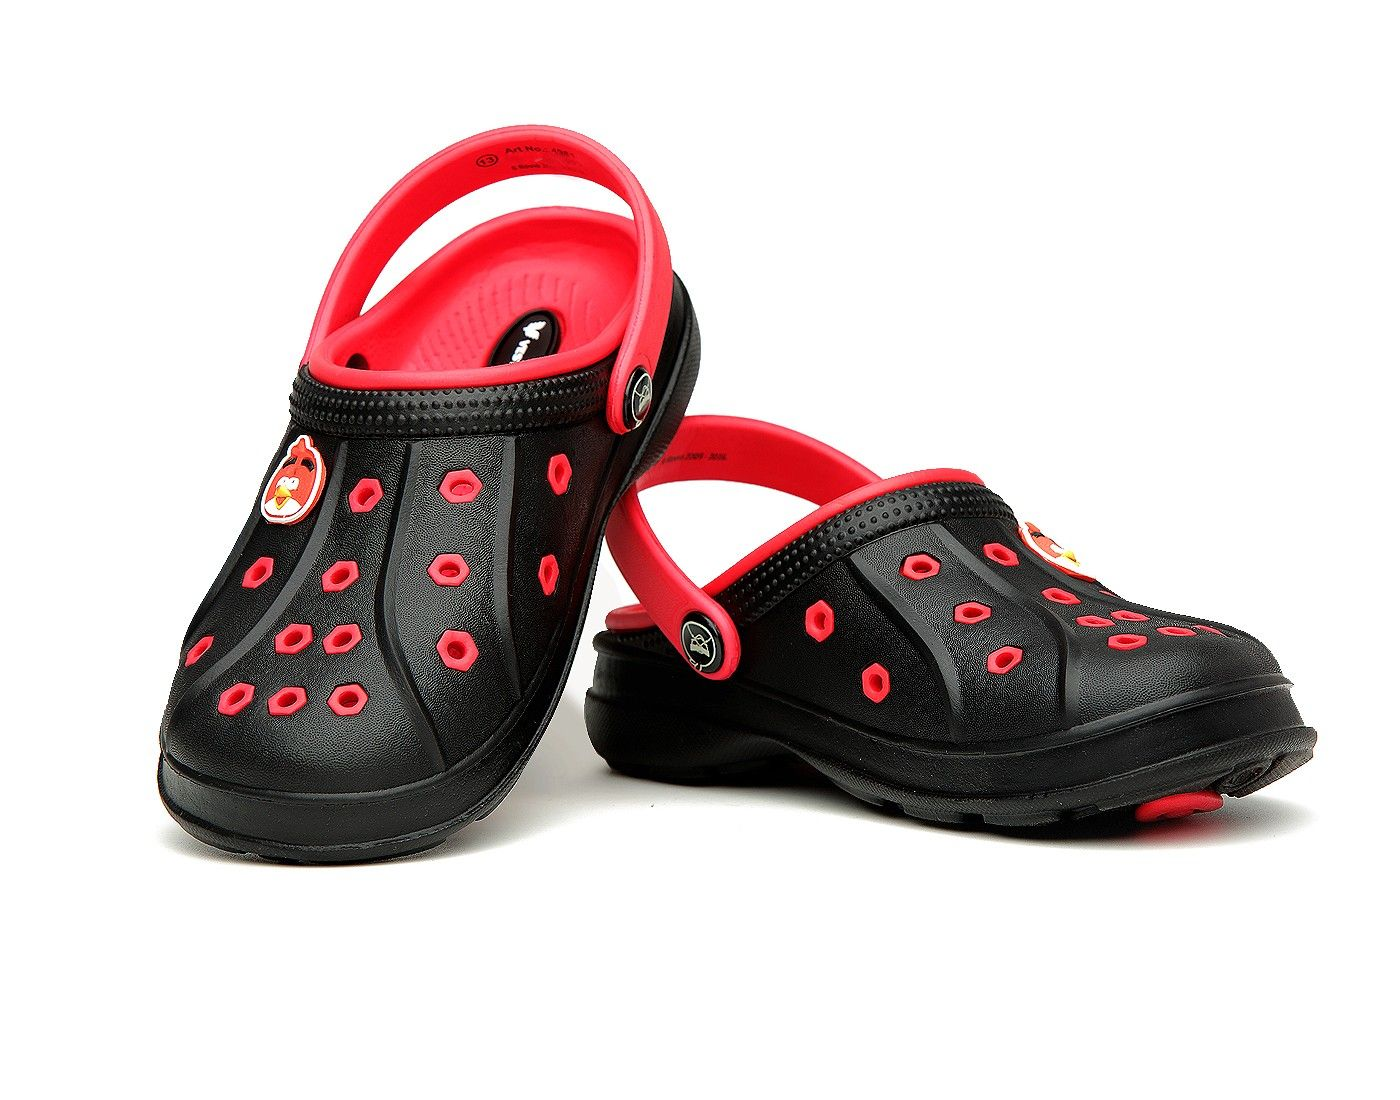 angry bird 4961 kids black clog (With images) | Kid shoes ...